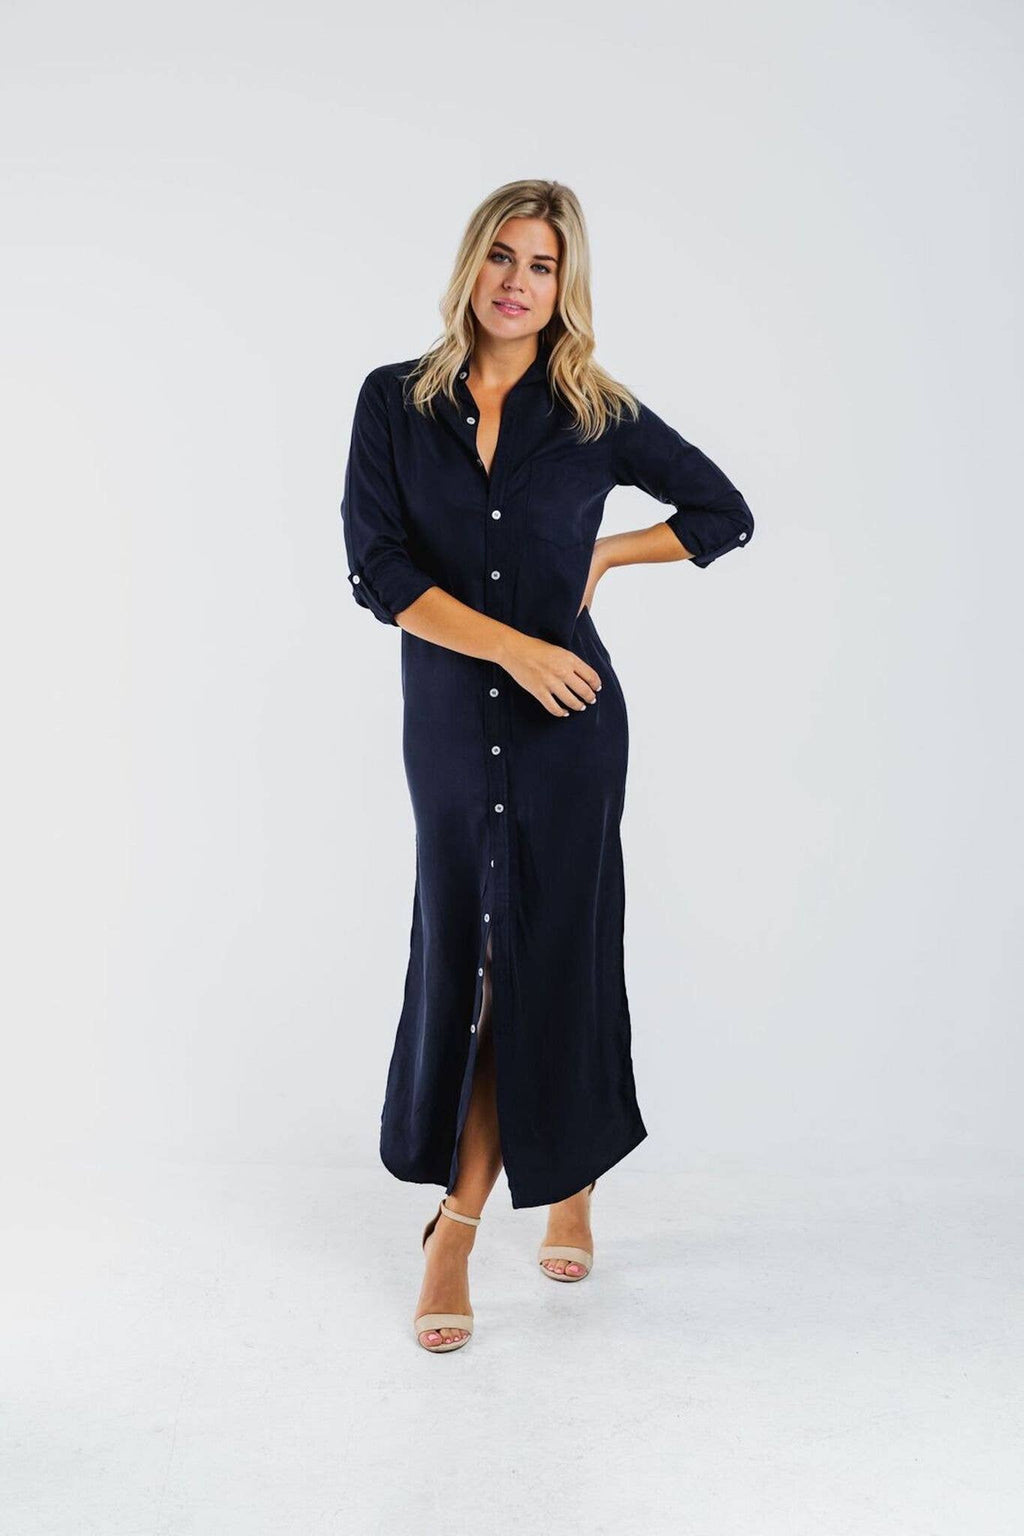 Emily Phillips Clothing - Navy Tencel Maxi Dress